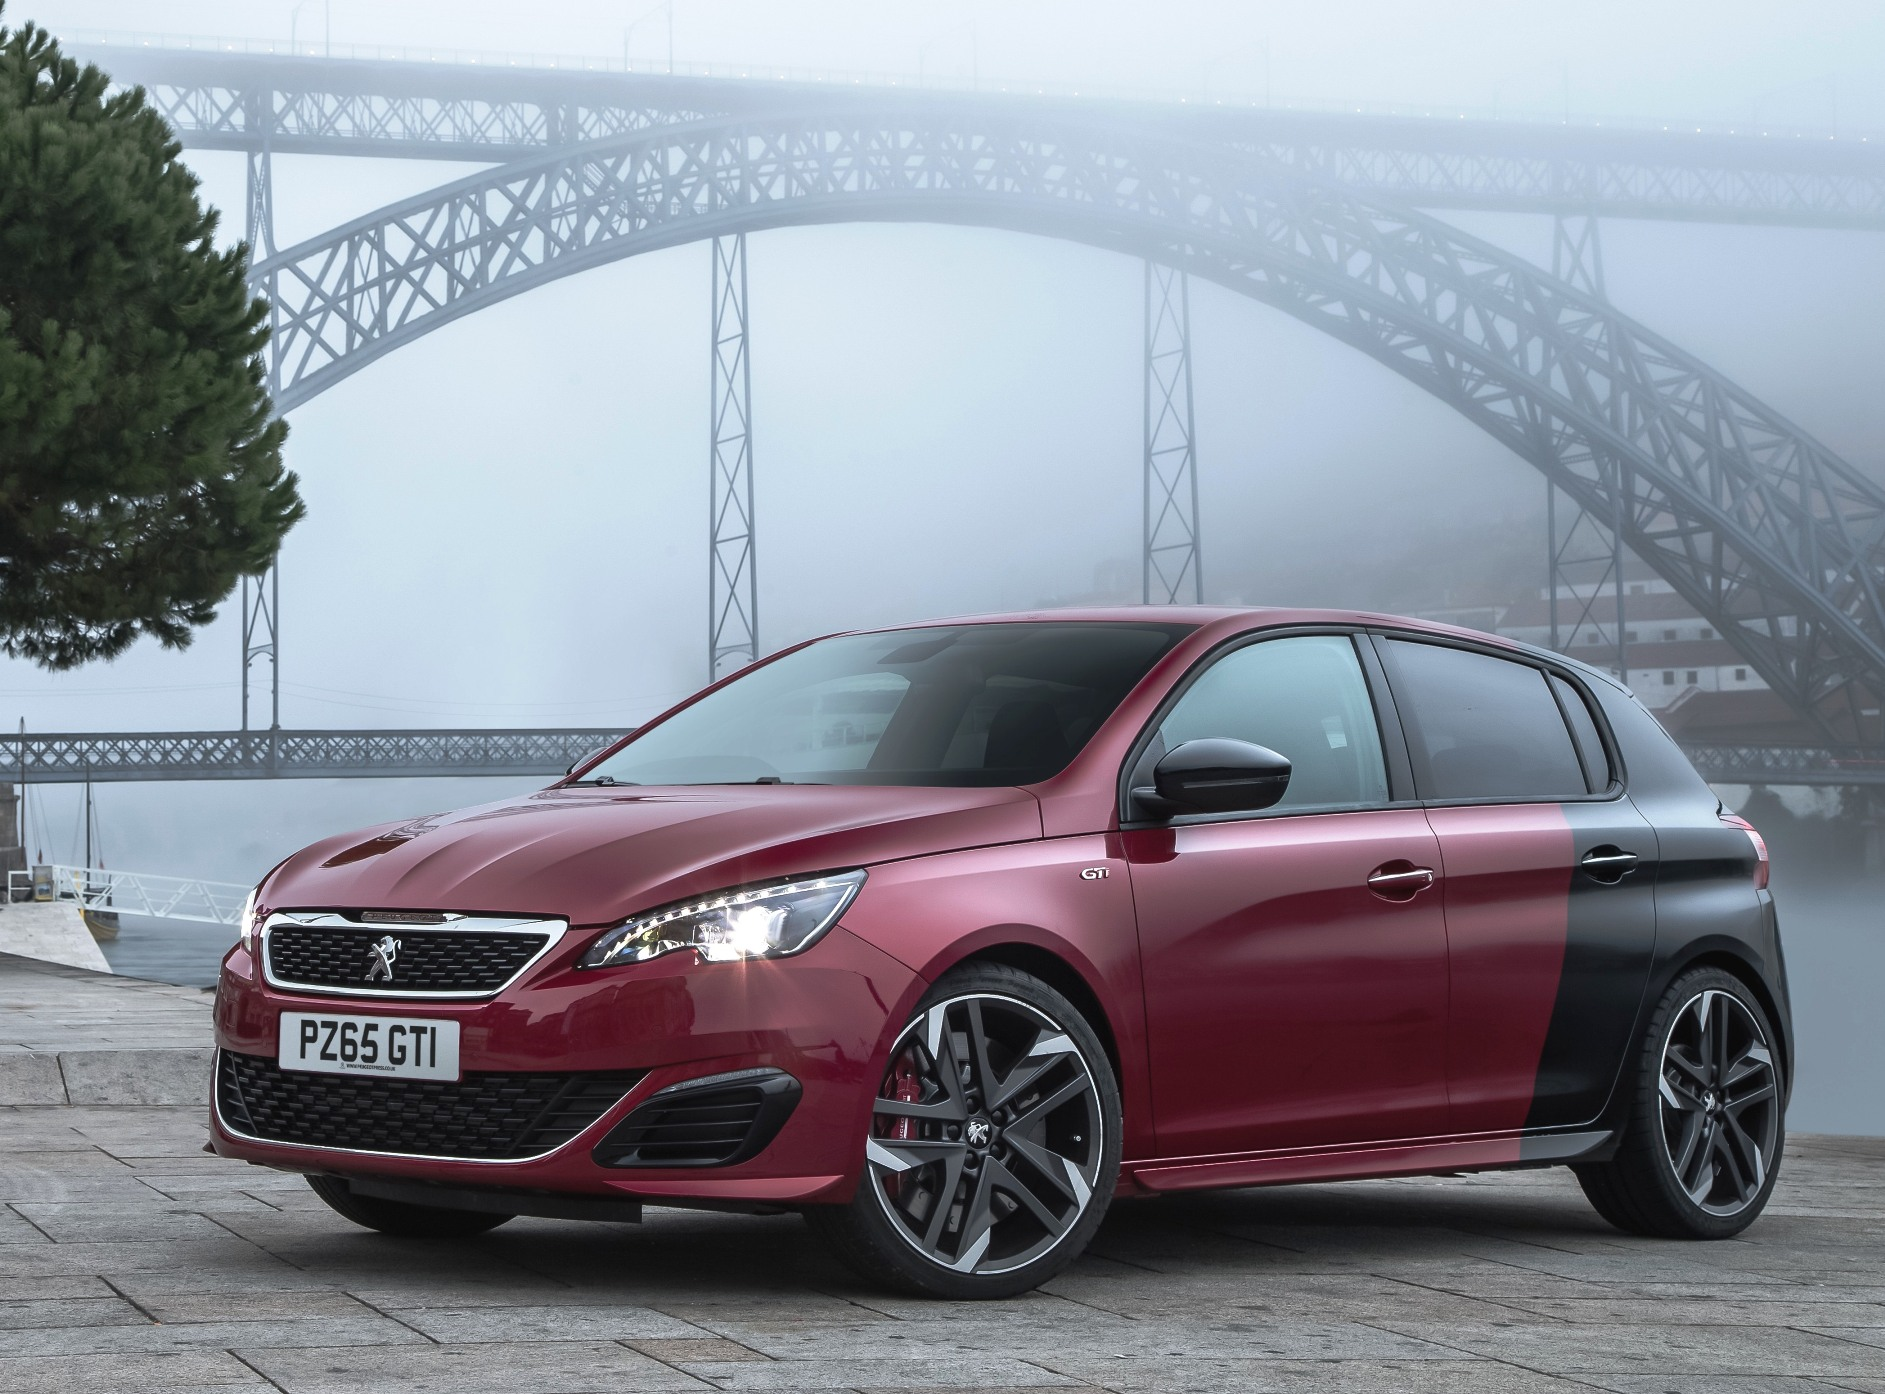 new peugeot 308 gti from peugeot sport road test wheels alive. Black Bedroom Furniture Sets. Home Design Ideas